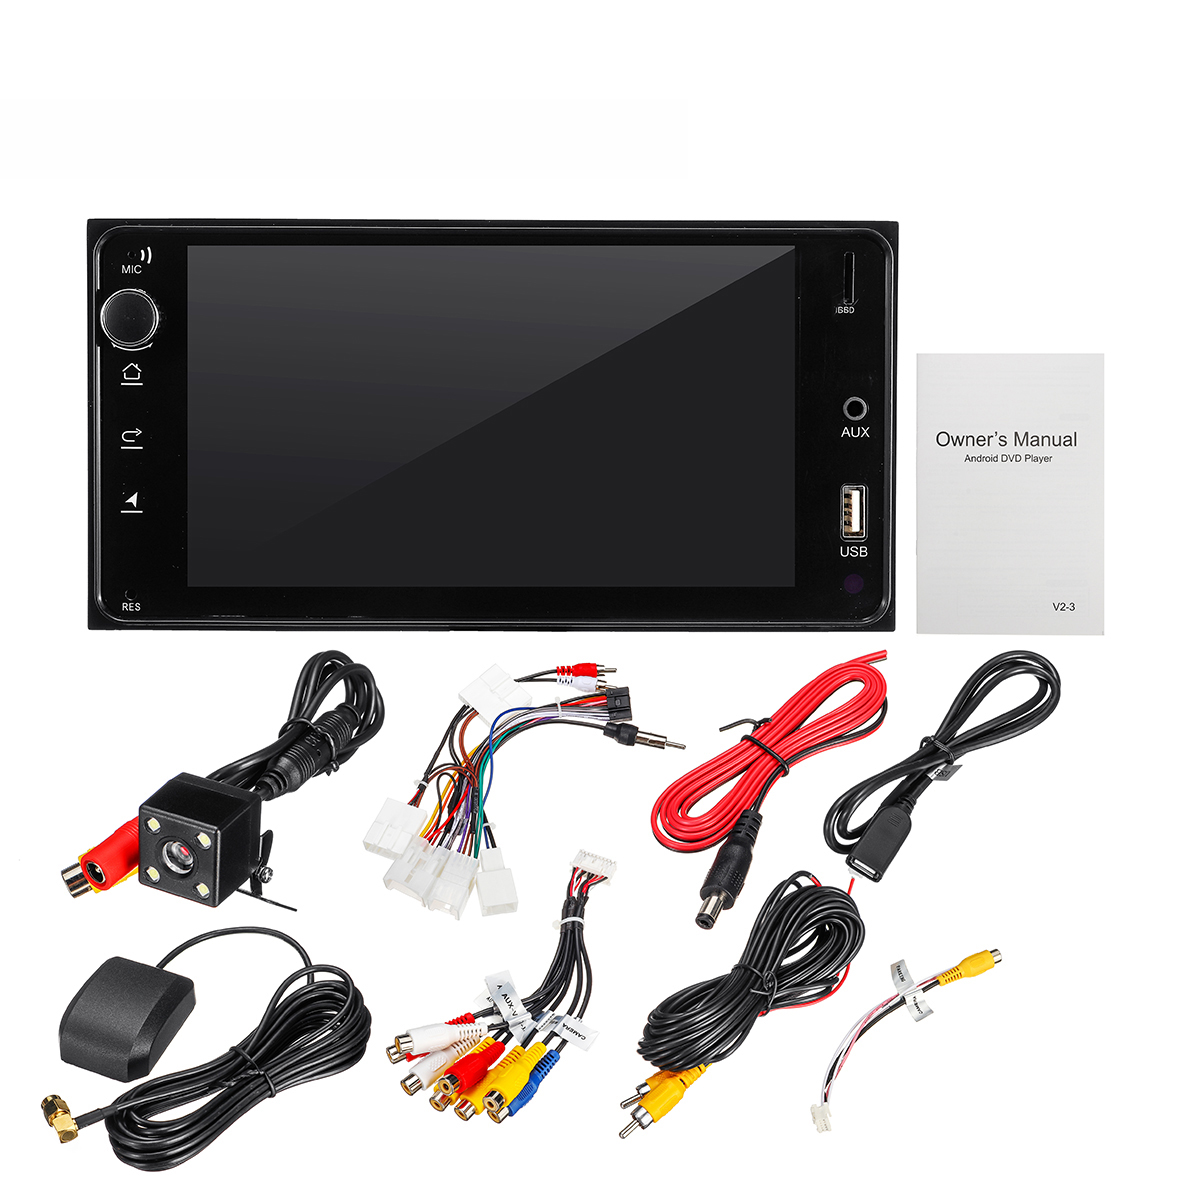 4 Channels x 40W MAX USB / AUX 4 Core 1080P Car Radio Stereo 7''